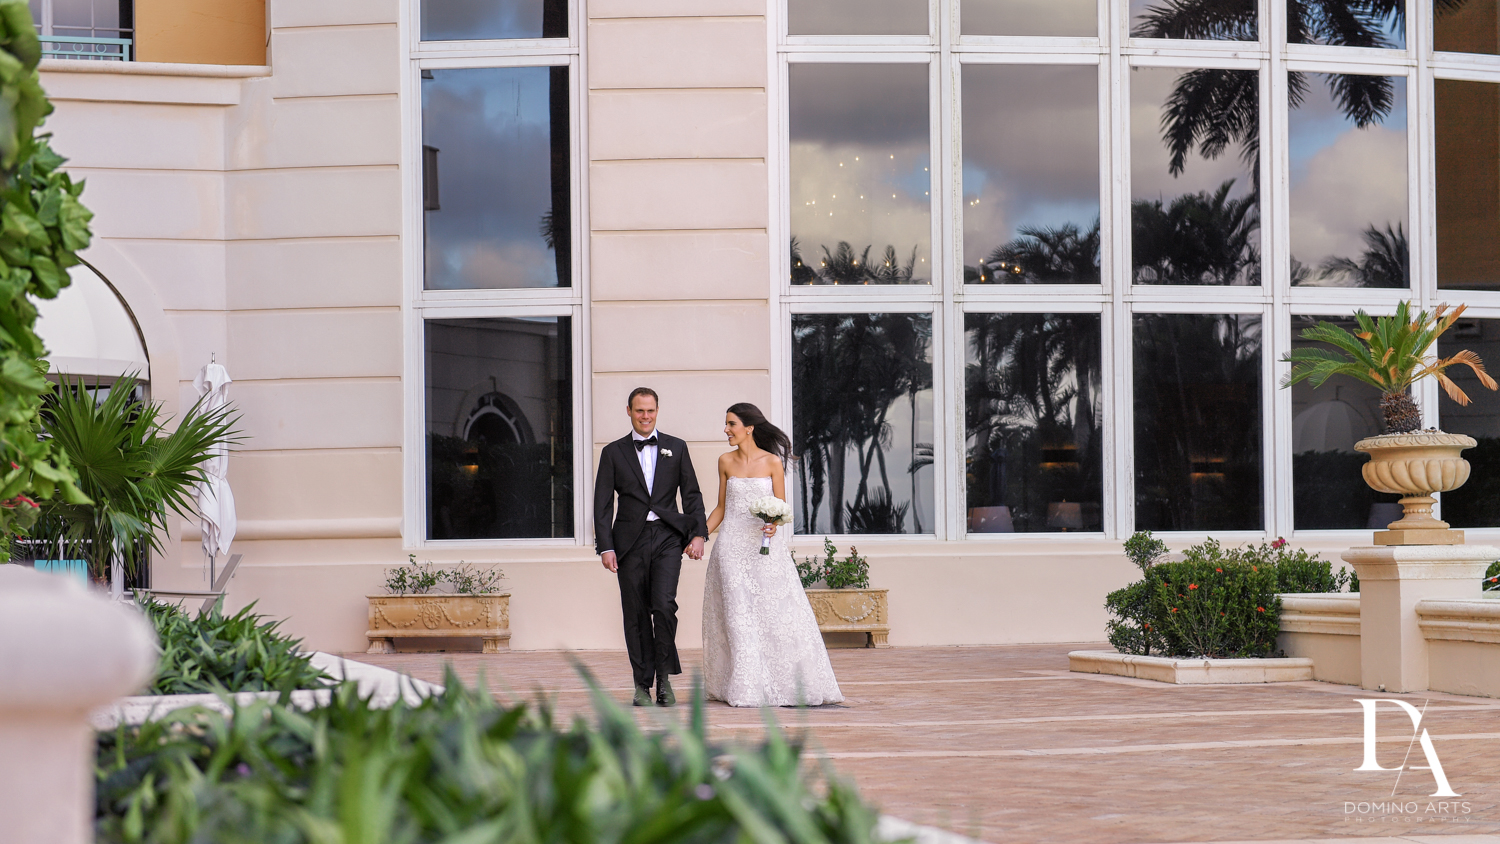 bride and groom at A Ritz Carlton Wedding in Key Biscayne by Domino Arts Photography